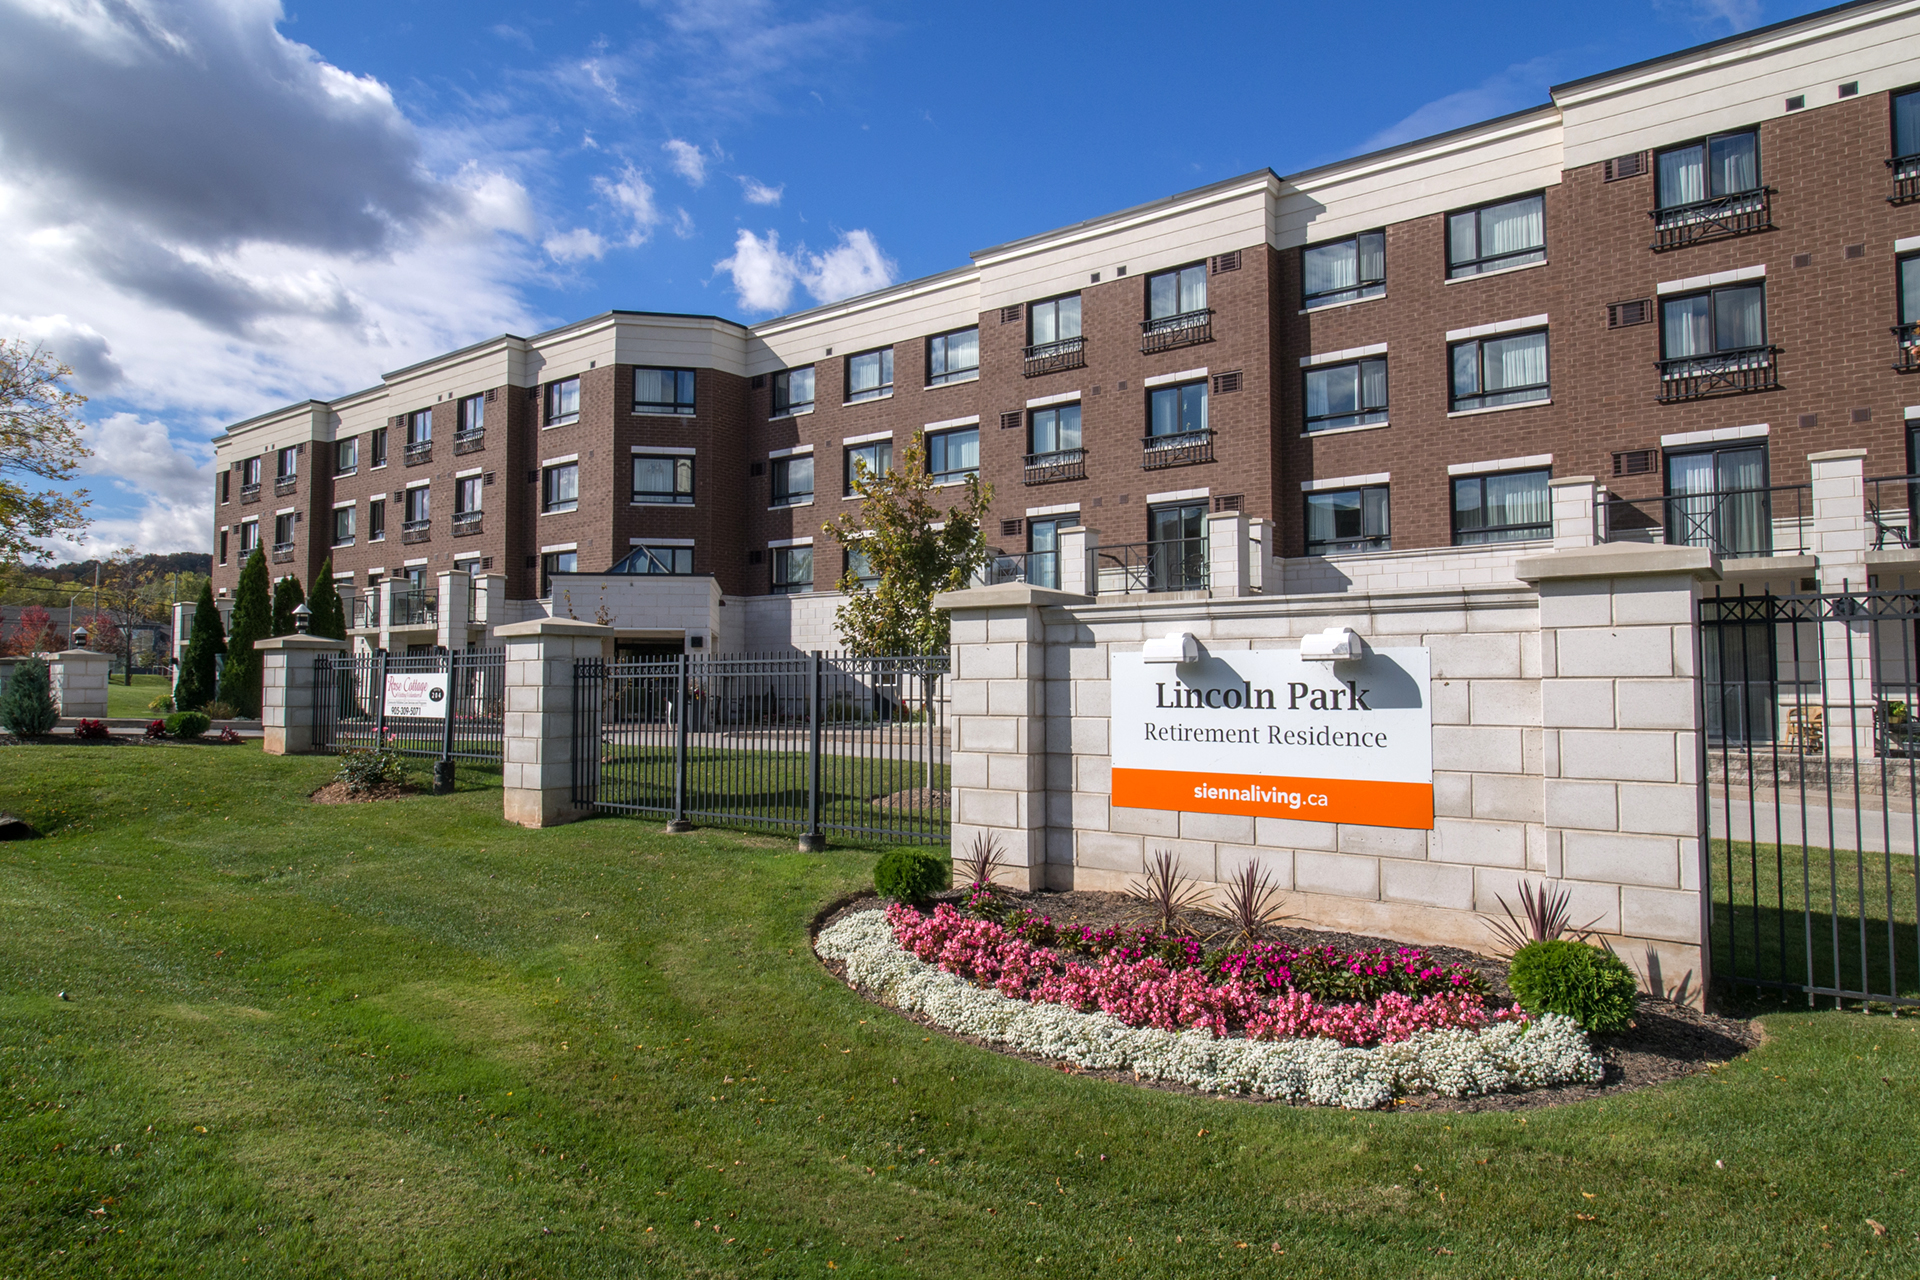 Exterior view of Lincoln Park Retirement Residence in Grimsby